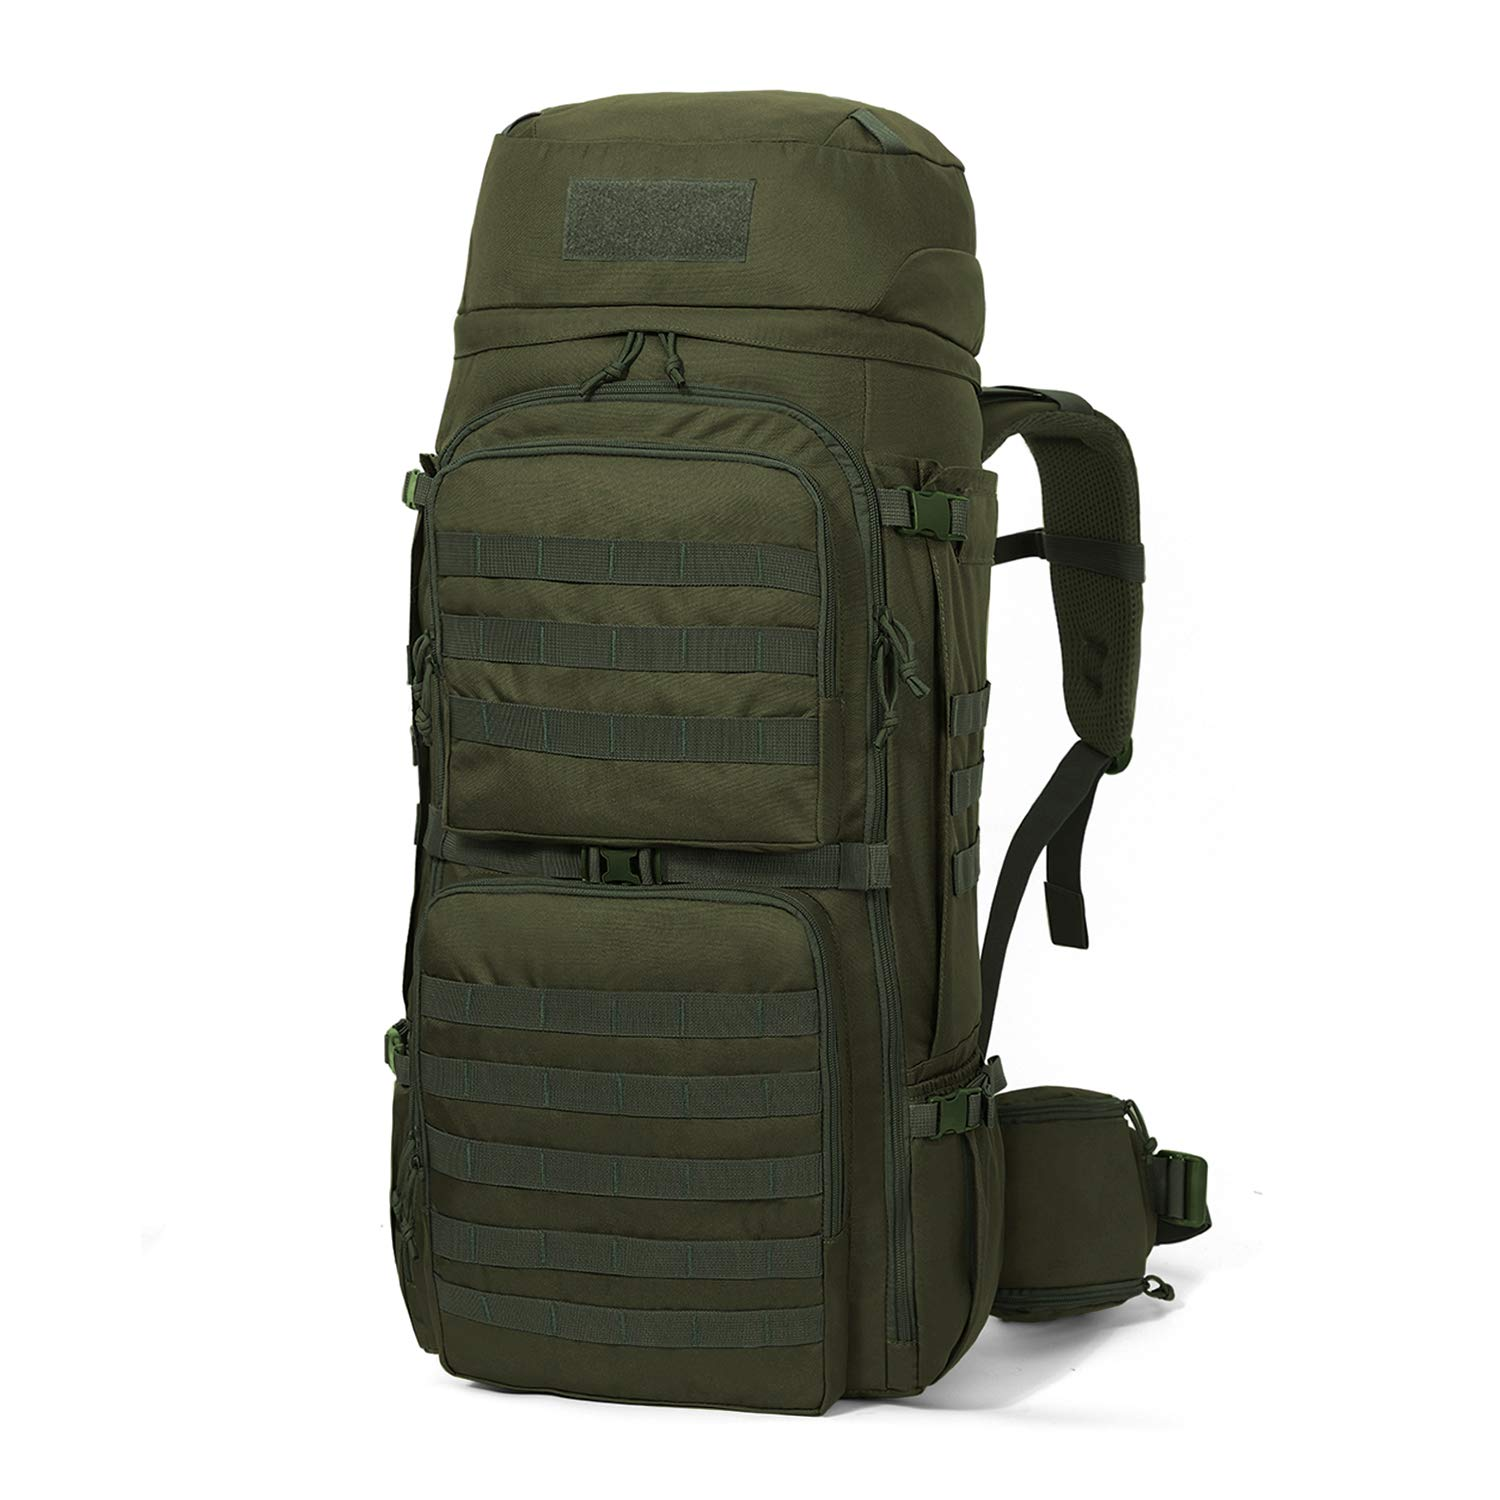 Mardingtop 75L Molle Hiking Internal Frame Backpacks with Rain Cover (M6312-Army Green-75L) by Mardingtop